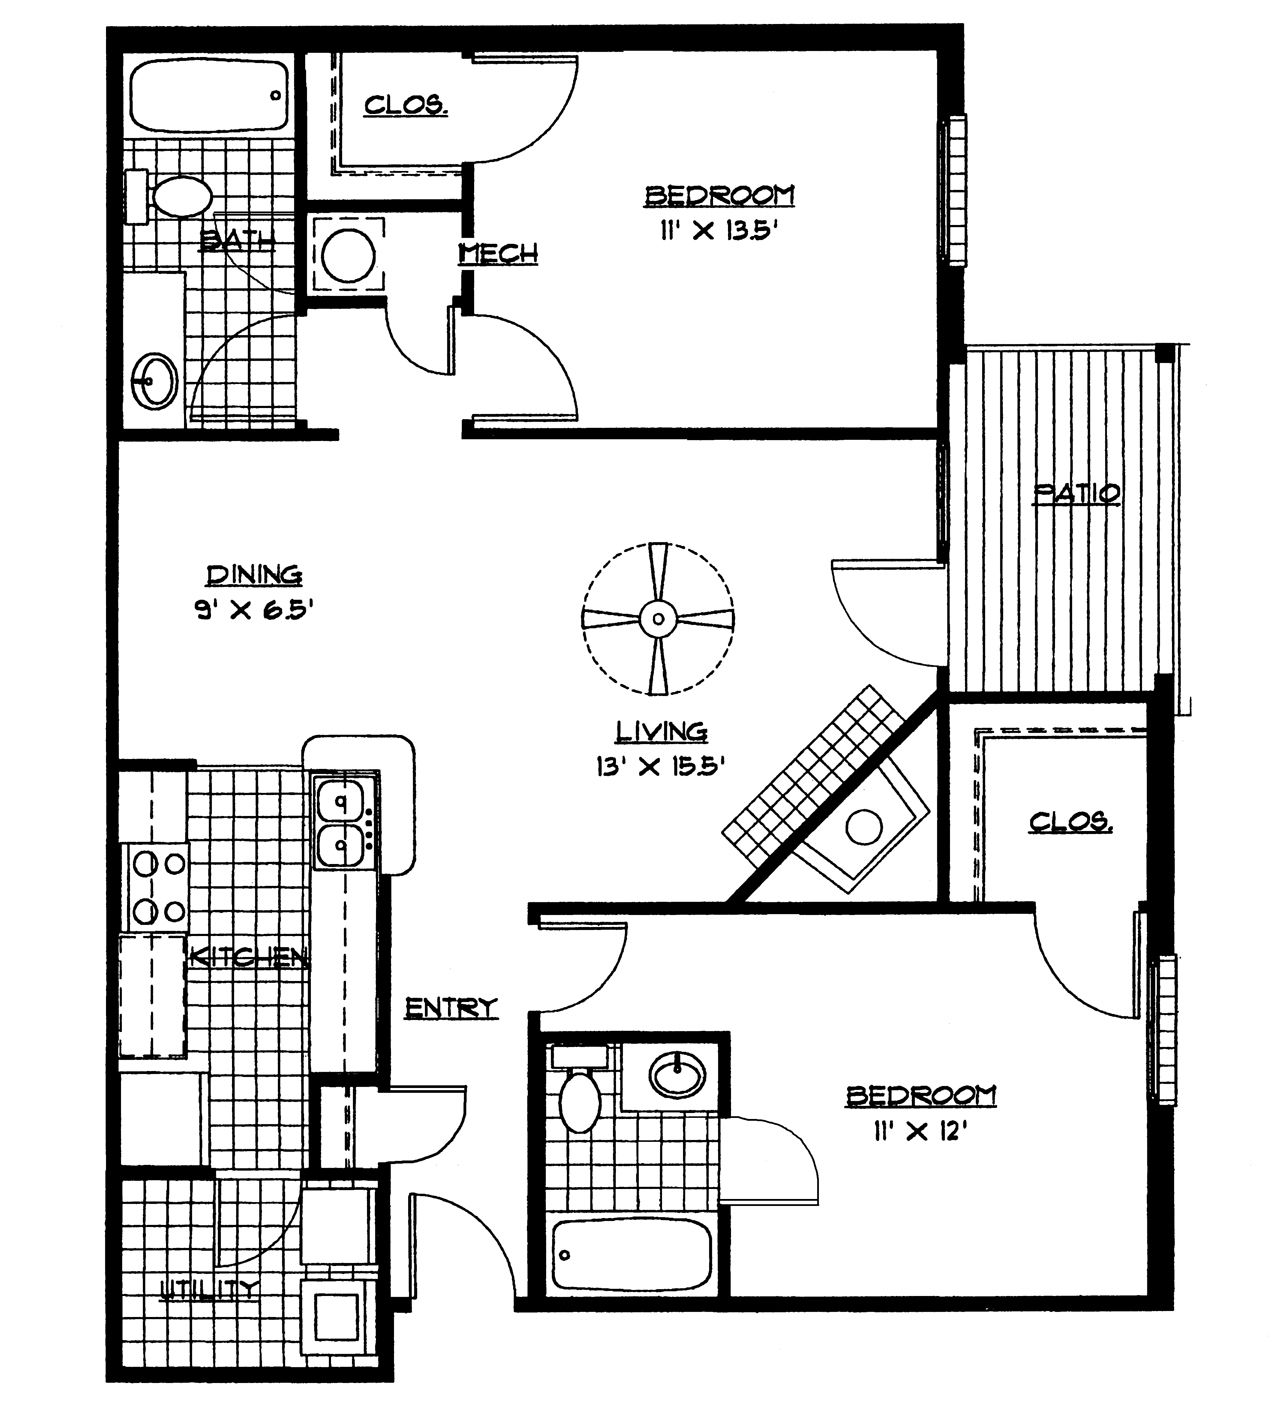 small house floor plans 2 bedrooms bedroom floor plan download printable pdf - Simple Floor Plans 2